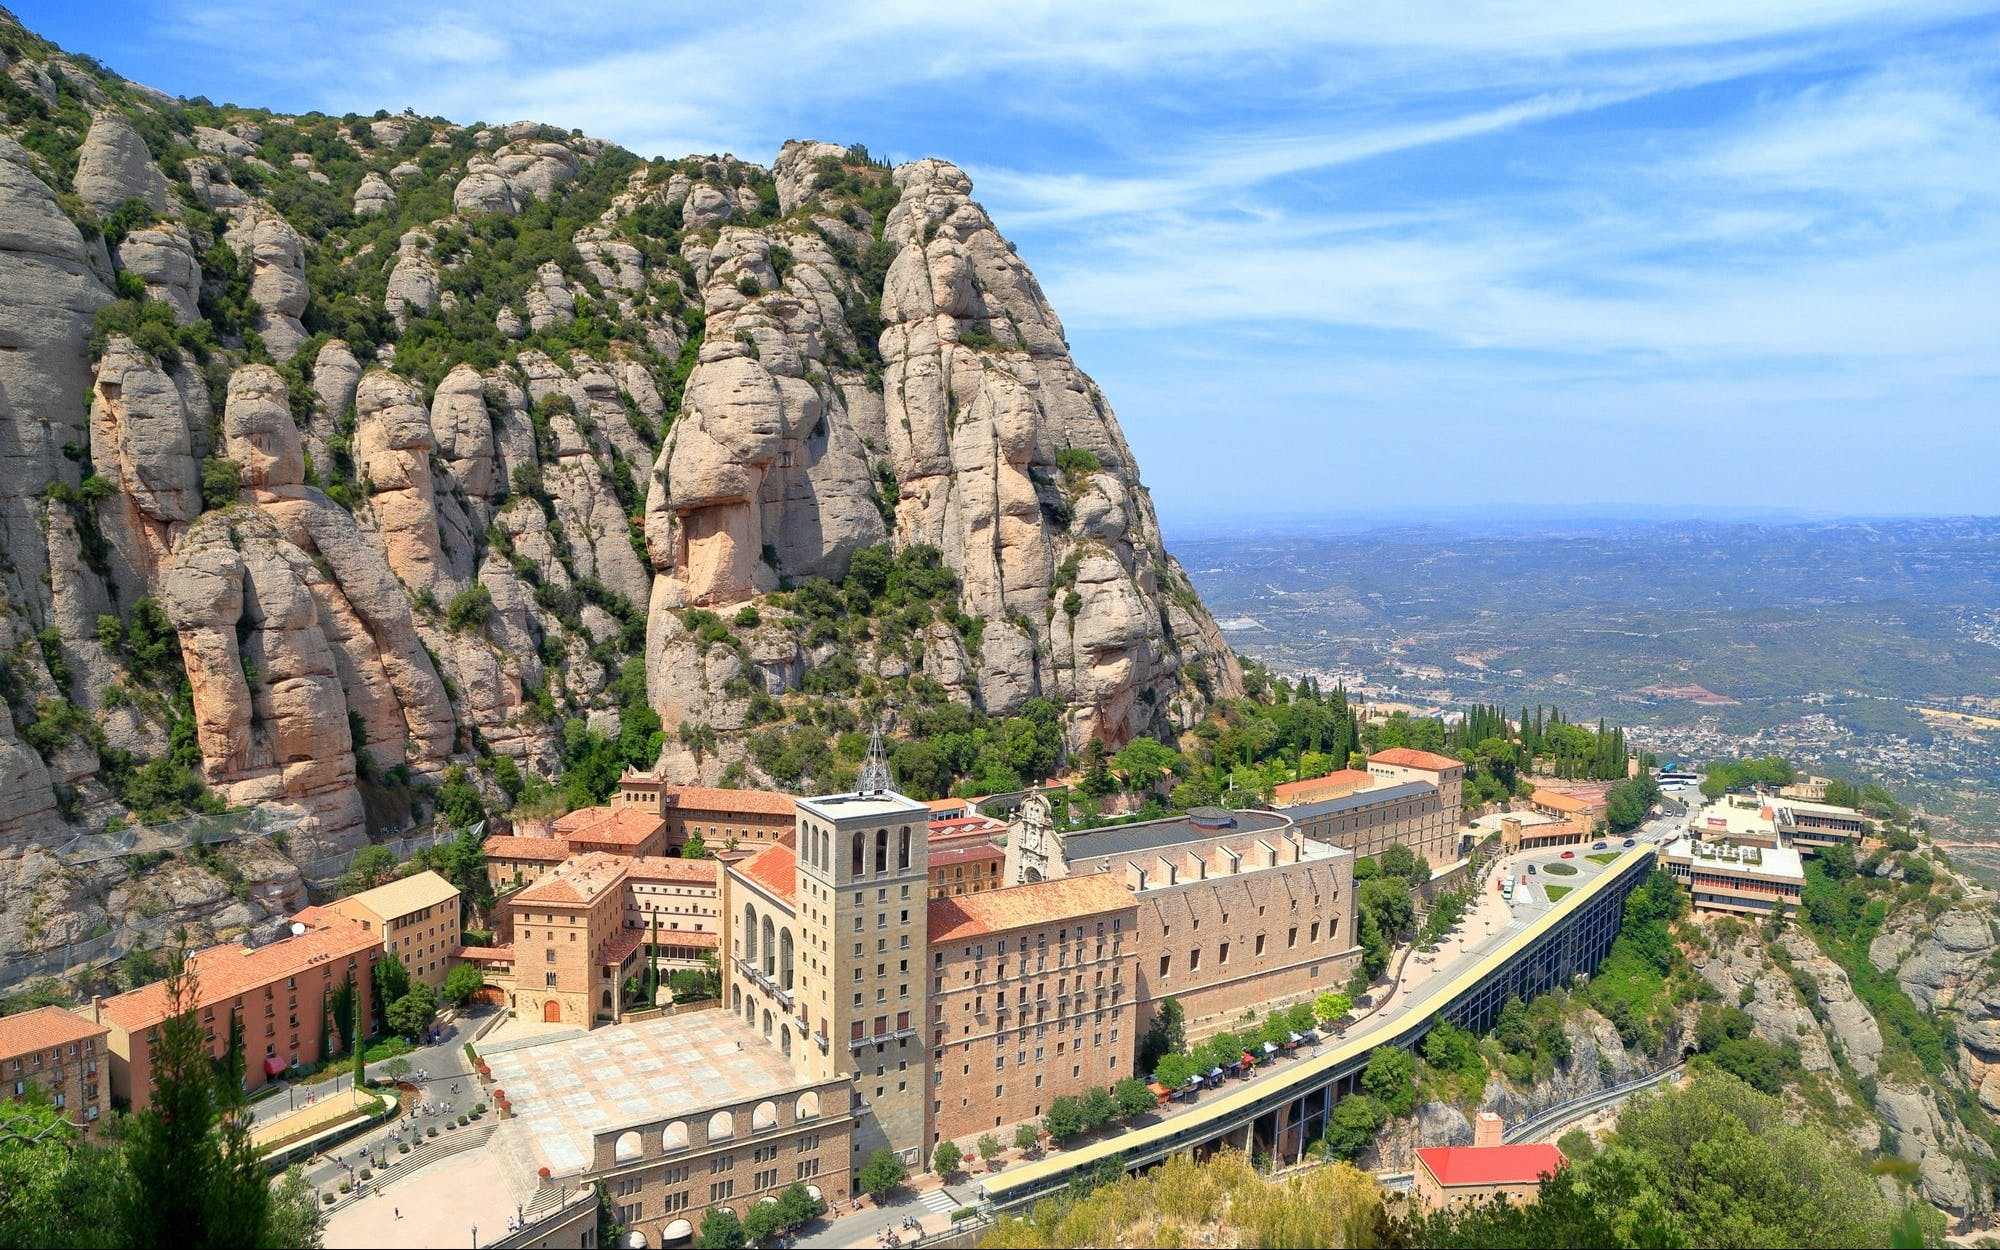 small group: early visit montserrat and santa cecilia church -3